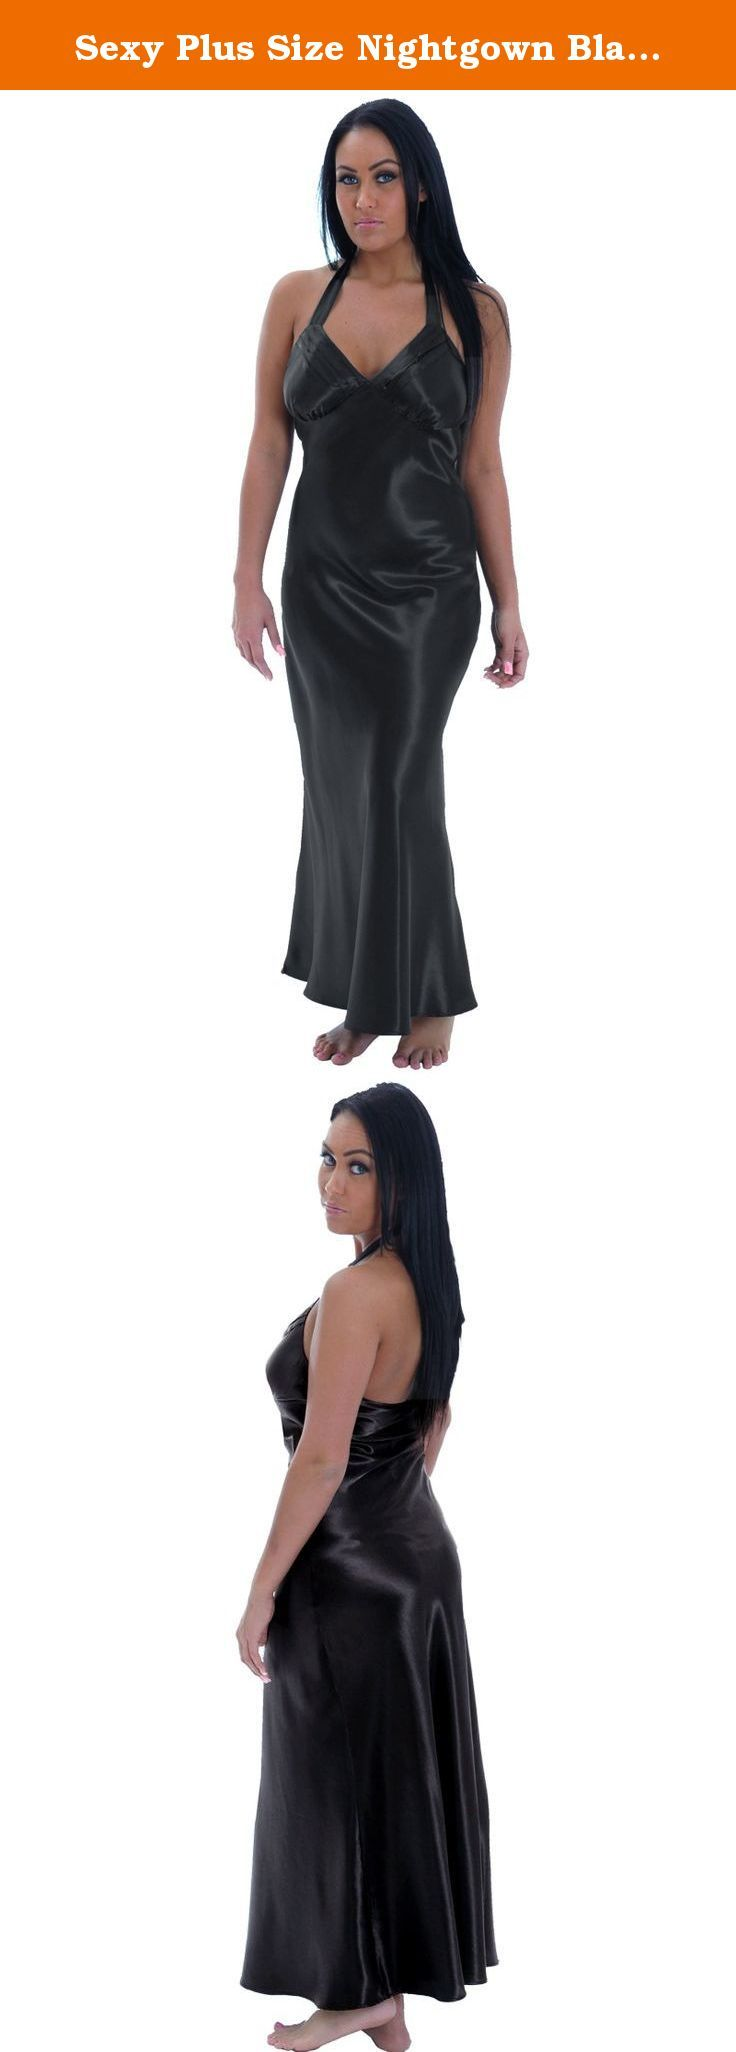 Sexy Plus Size Nightgown Black Satin Charmeuse Long Halter Lingerie Gown Sizes: 2X. A timeless classic the nightgown gets a very sexy twist with shiny satin charmeuse. Elegant and classy this long black plus size nightgown is sure to wow. For a seductive glamorous look pair with a great red lip and a sexy come hither gaze. .